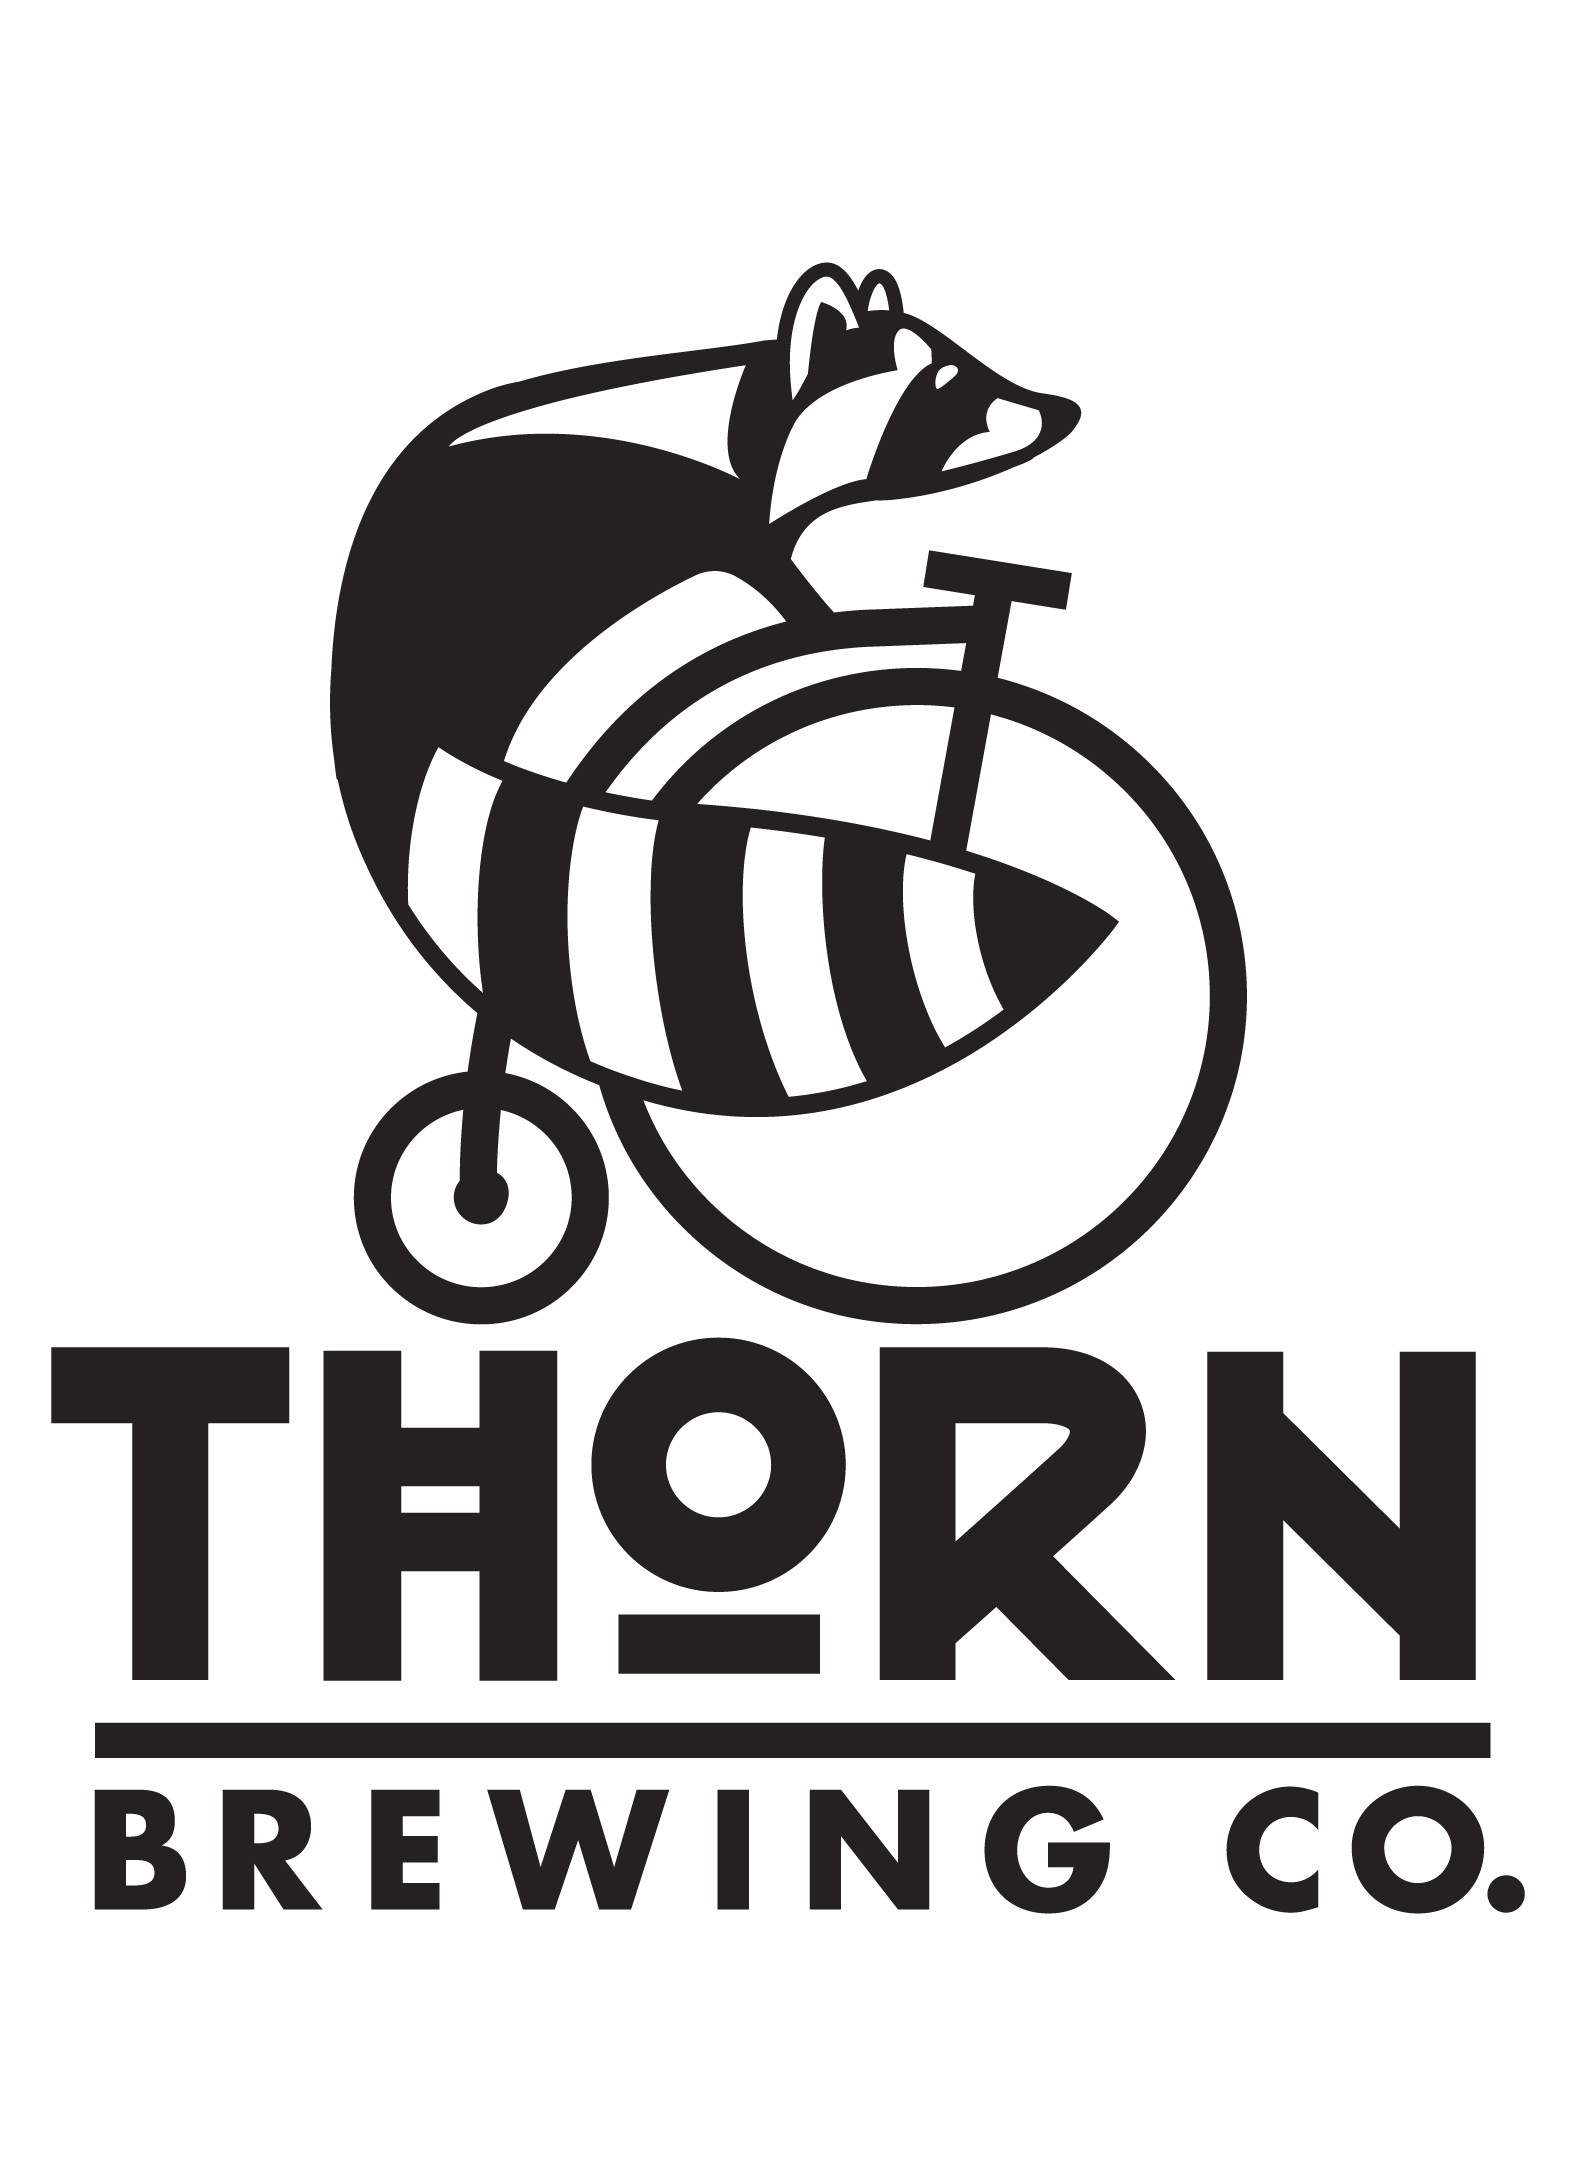 Thorn Brewing Co.   Thorn Street Brewery's rebrand to Thorn Brewing Co with Ralph the raccoon riding a penny farthing bike, San Diego, CA.